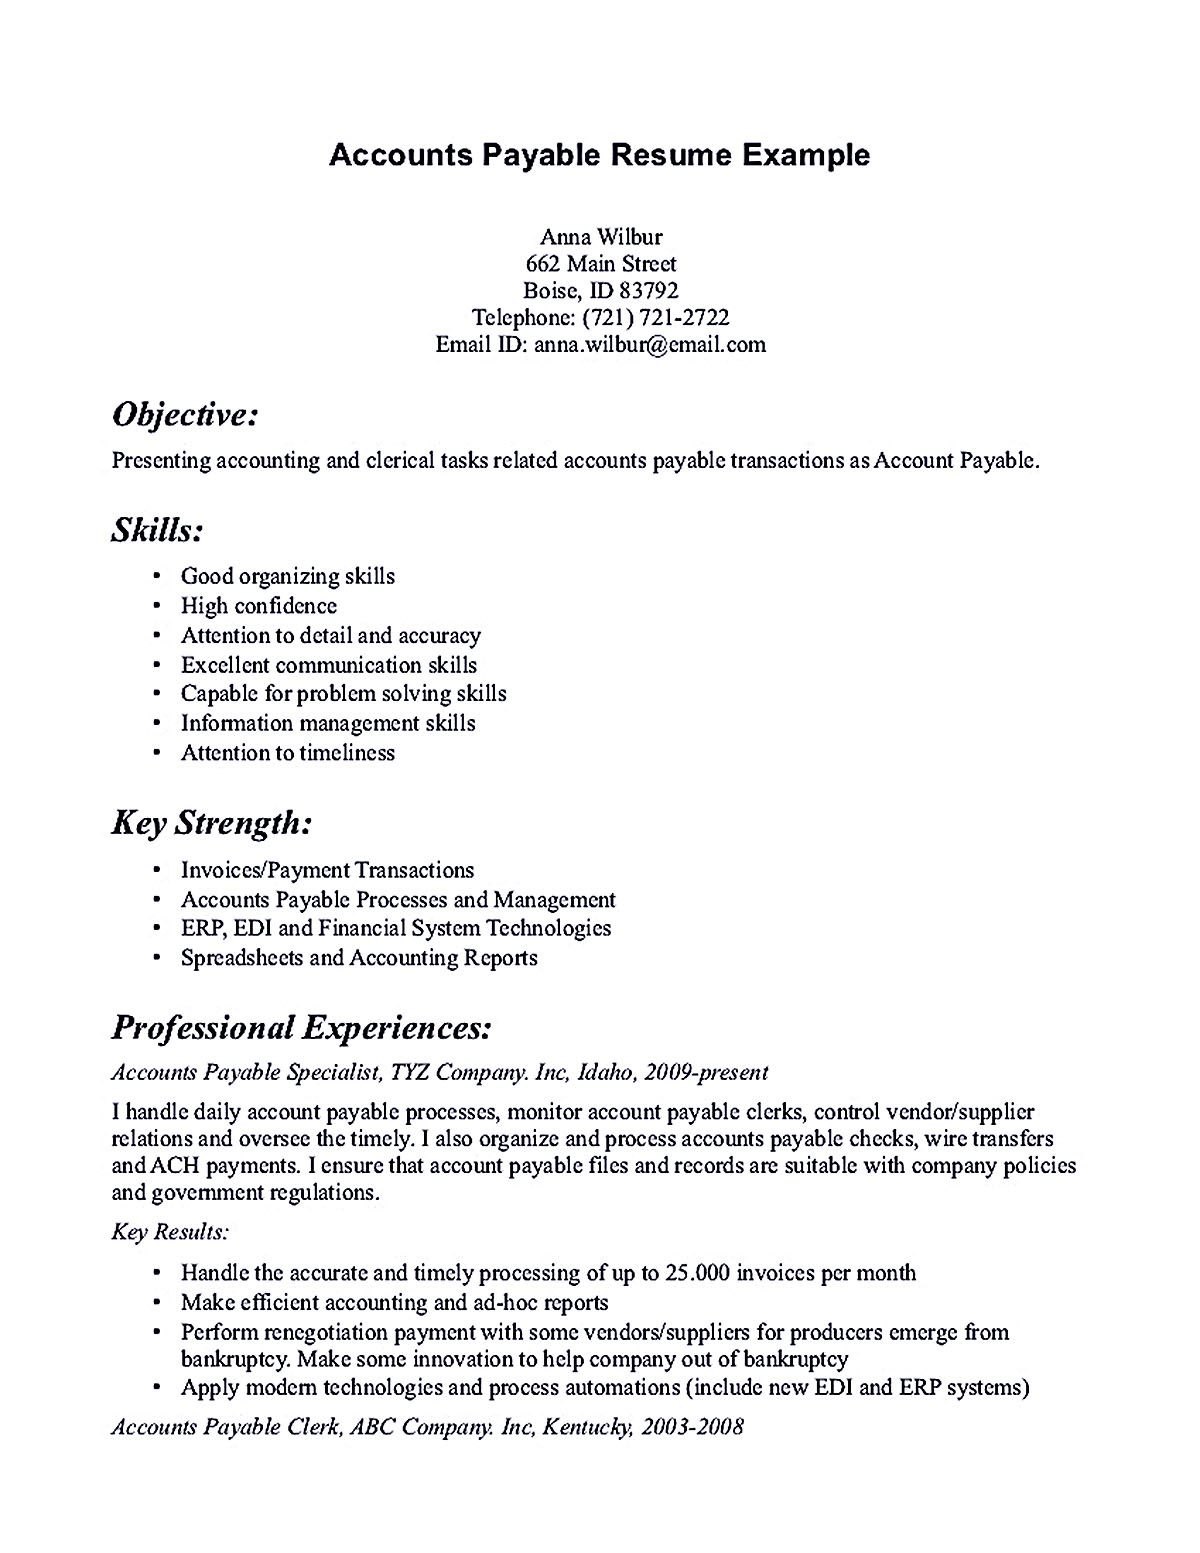 Best Account Payable Resume Sample Collections Resume Examples